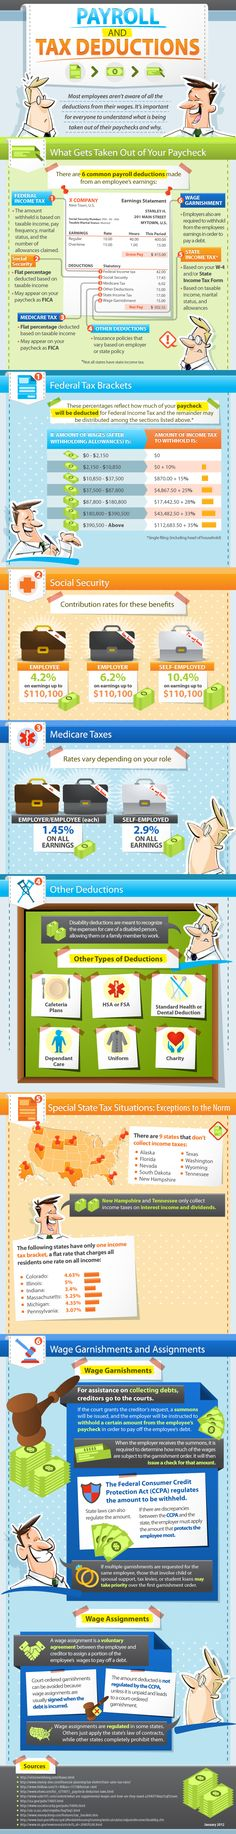 Payroll and Tax Deductions from Paycor #infographics